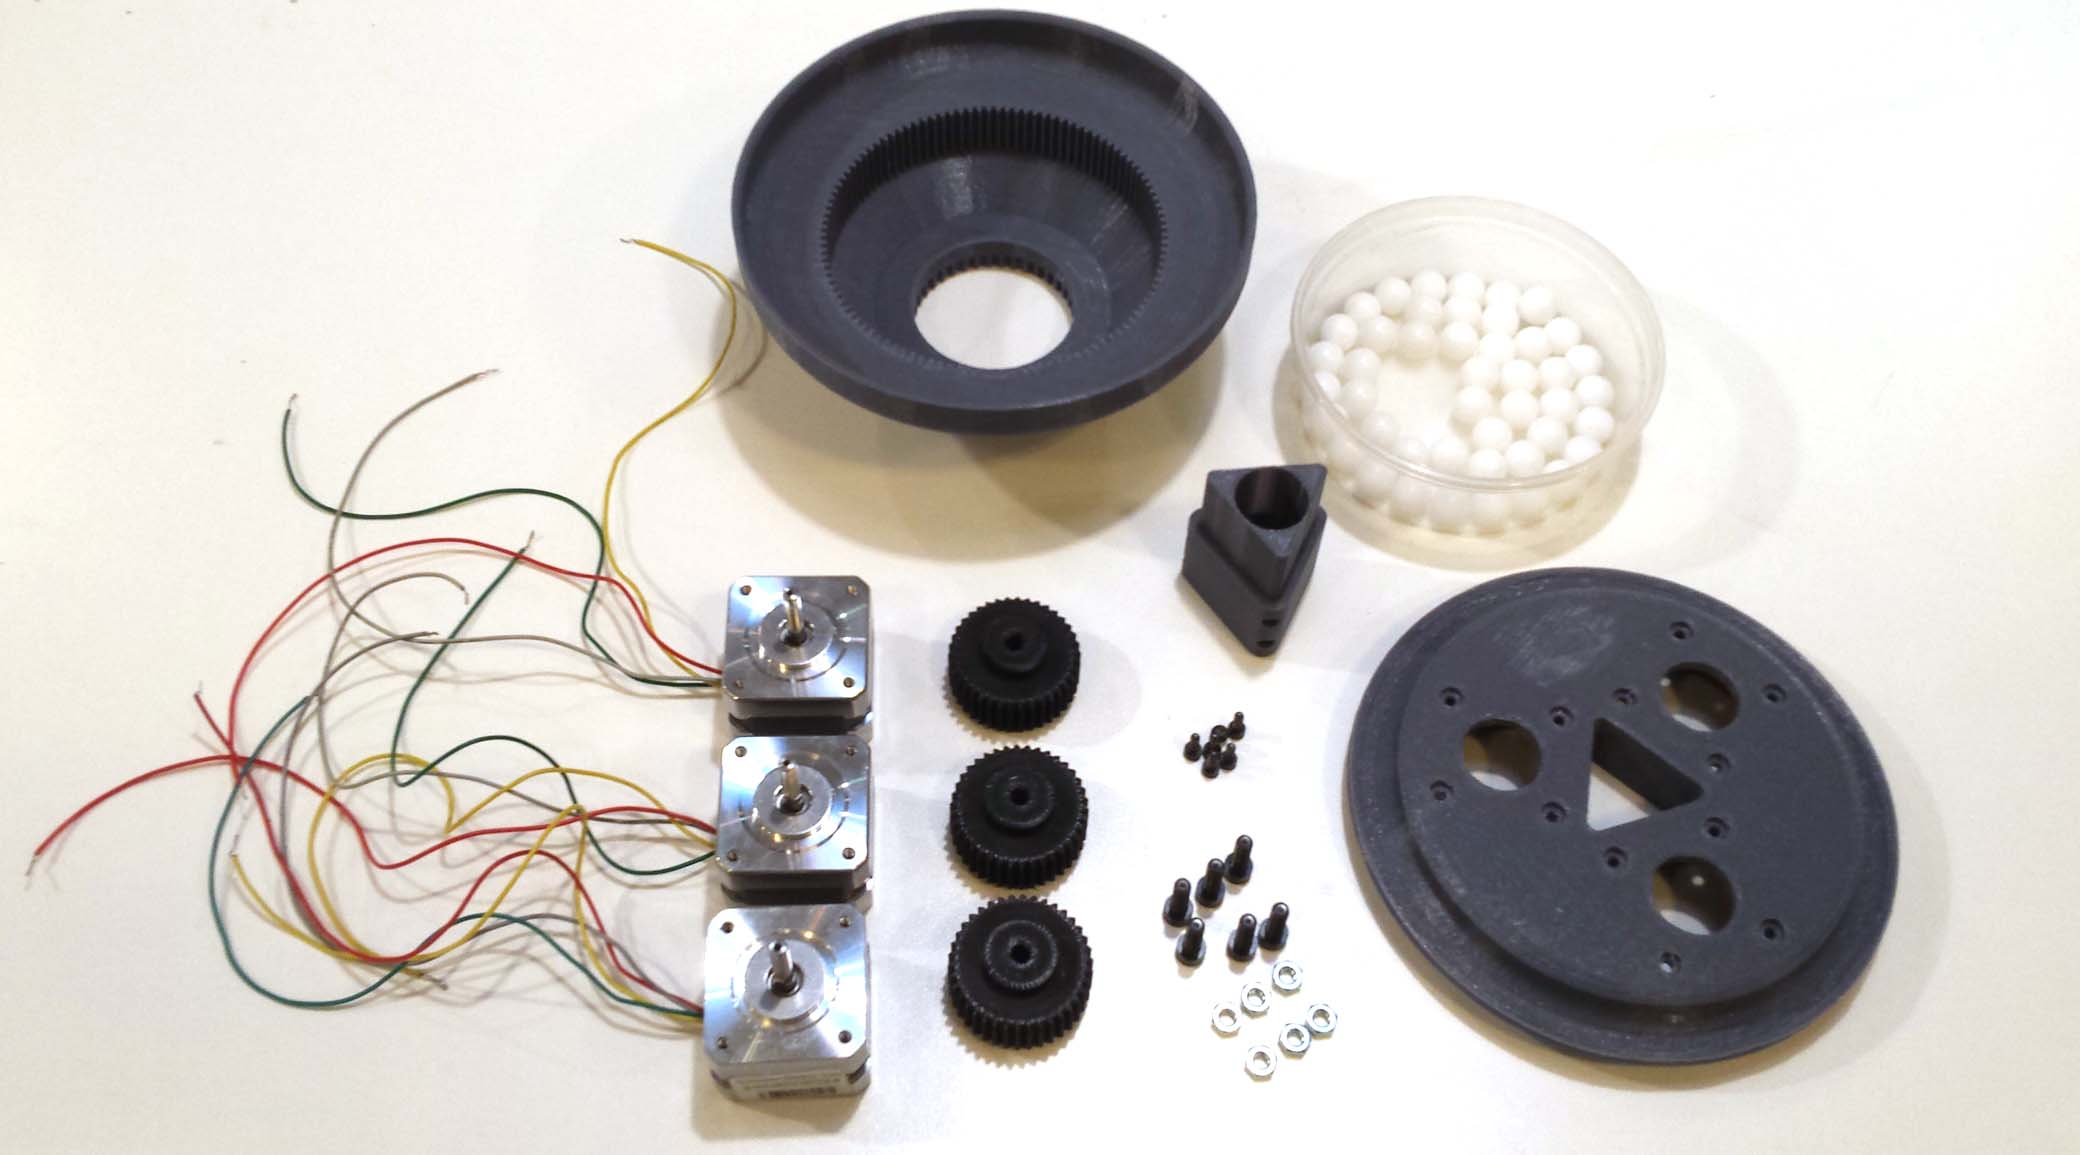 The Parts of the 3D Printed Stepper Motor Generator.  The Spheres are 1/2 inch Delrin balls